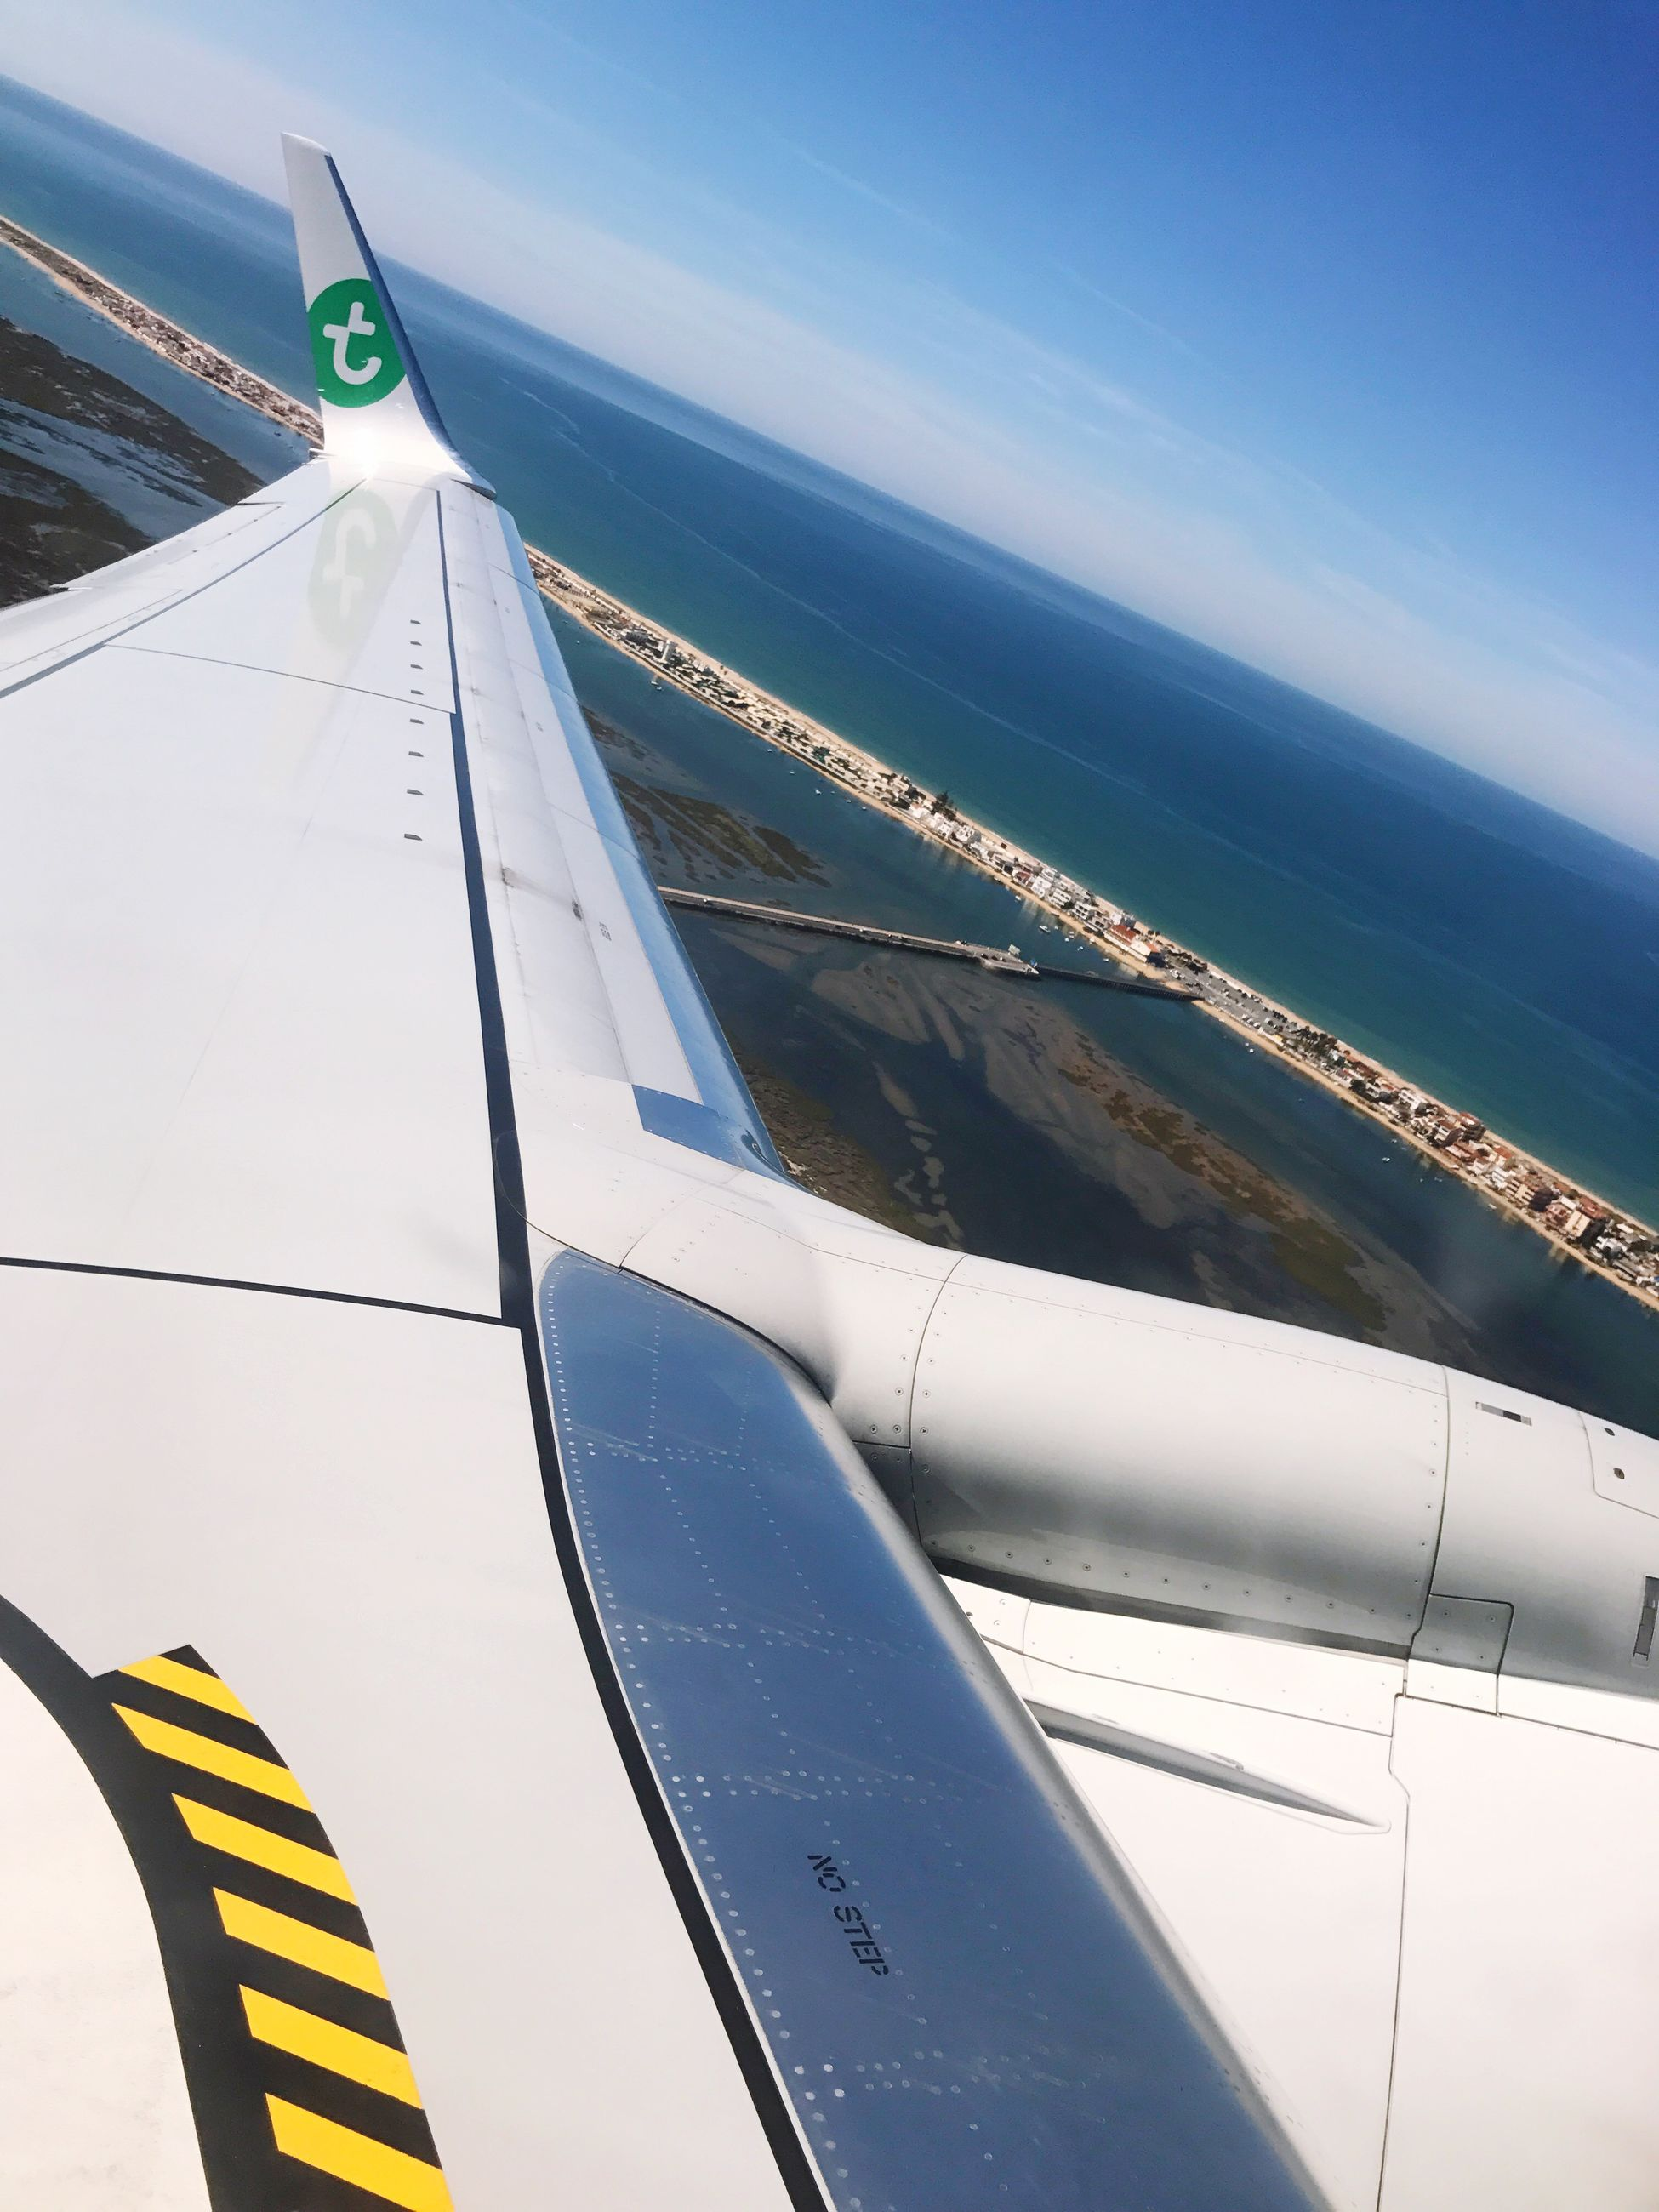 airplane, transportation, air vehicle, mode of transport, no people, day, aircraft wing, sea, outdoors, blue, flying, sky, airplane wing, water, nature, close-up